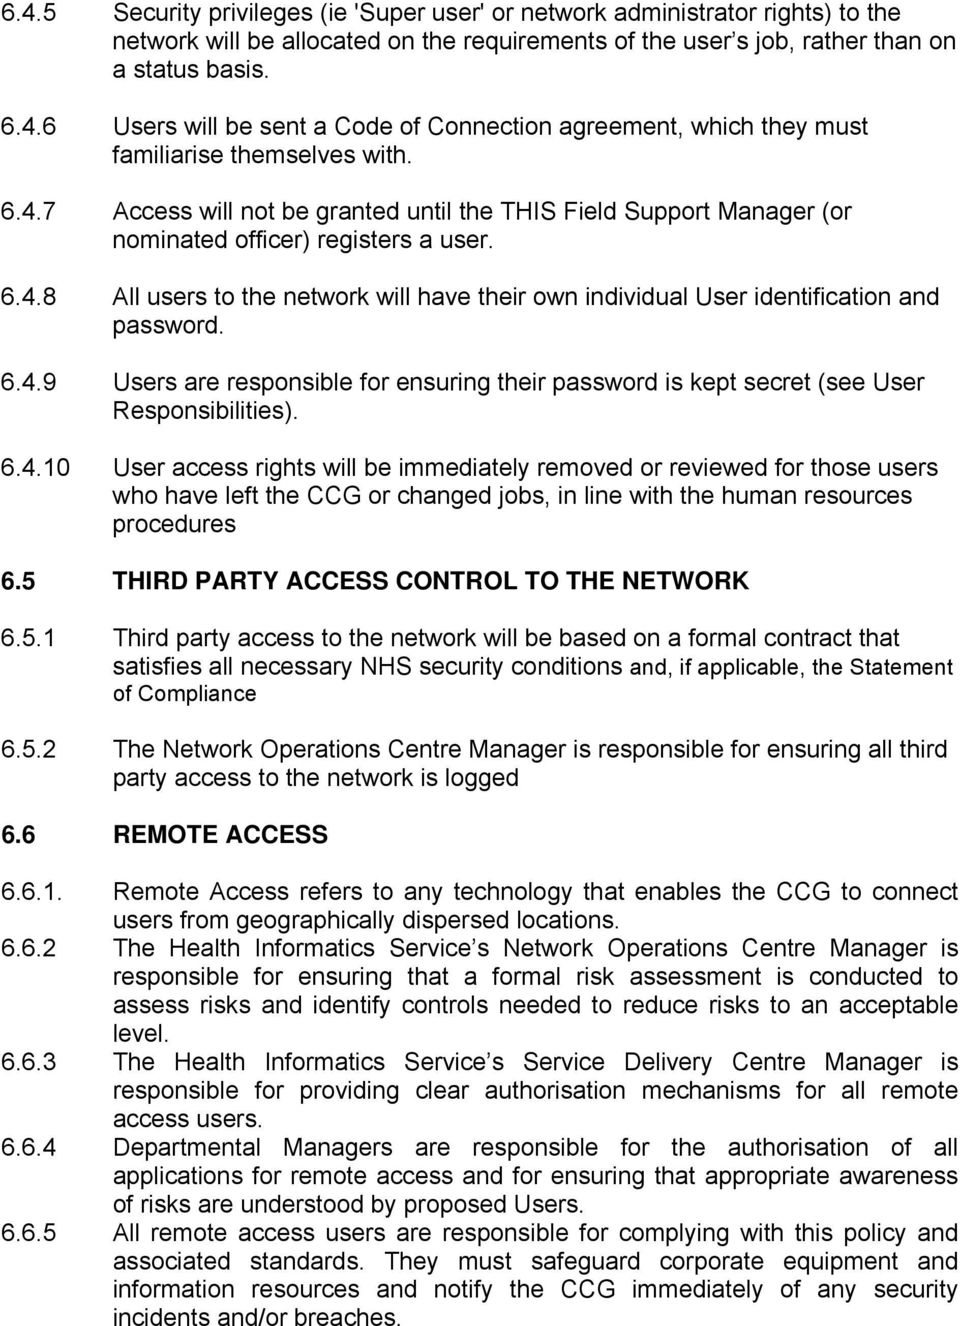 6.4.9 Users are responsible for ensuring their password is kept secret (see User Responsibilities). 6.4.10 User access rights will be immediately removed or reviewed for those users who have left the CCG or changed jobs, in line with the human resources procedures 6.